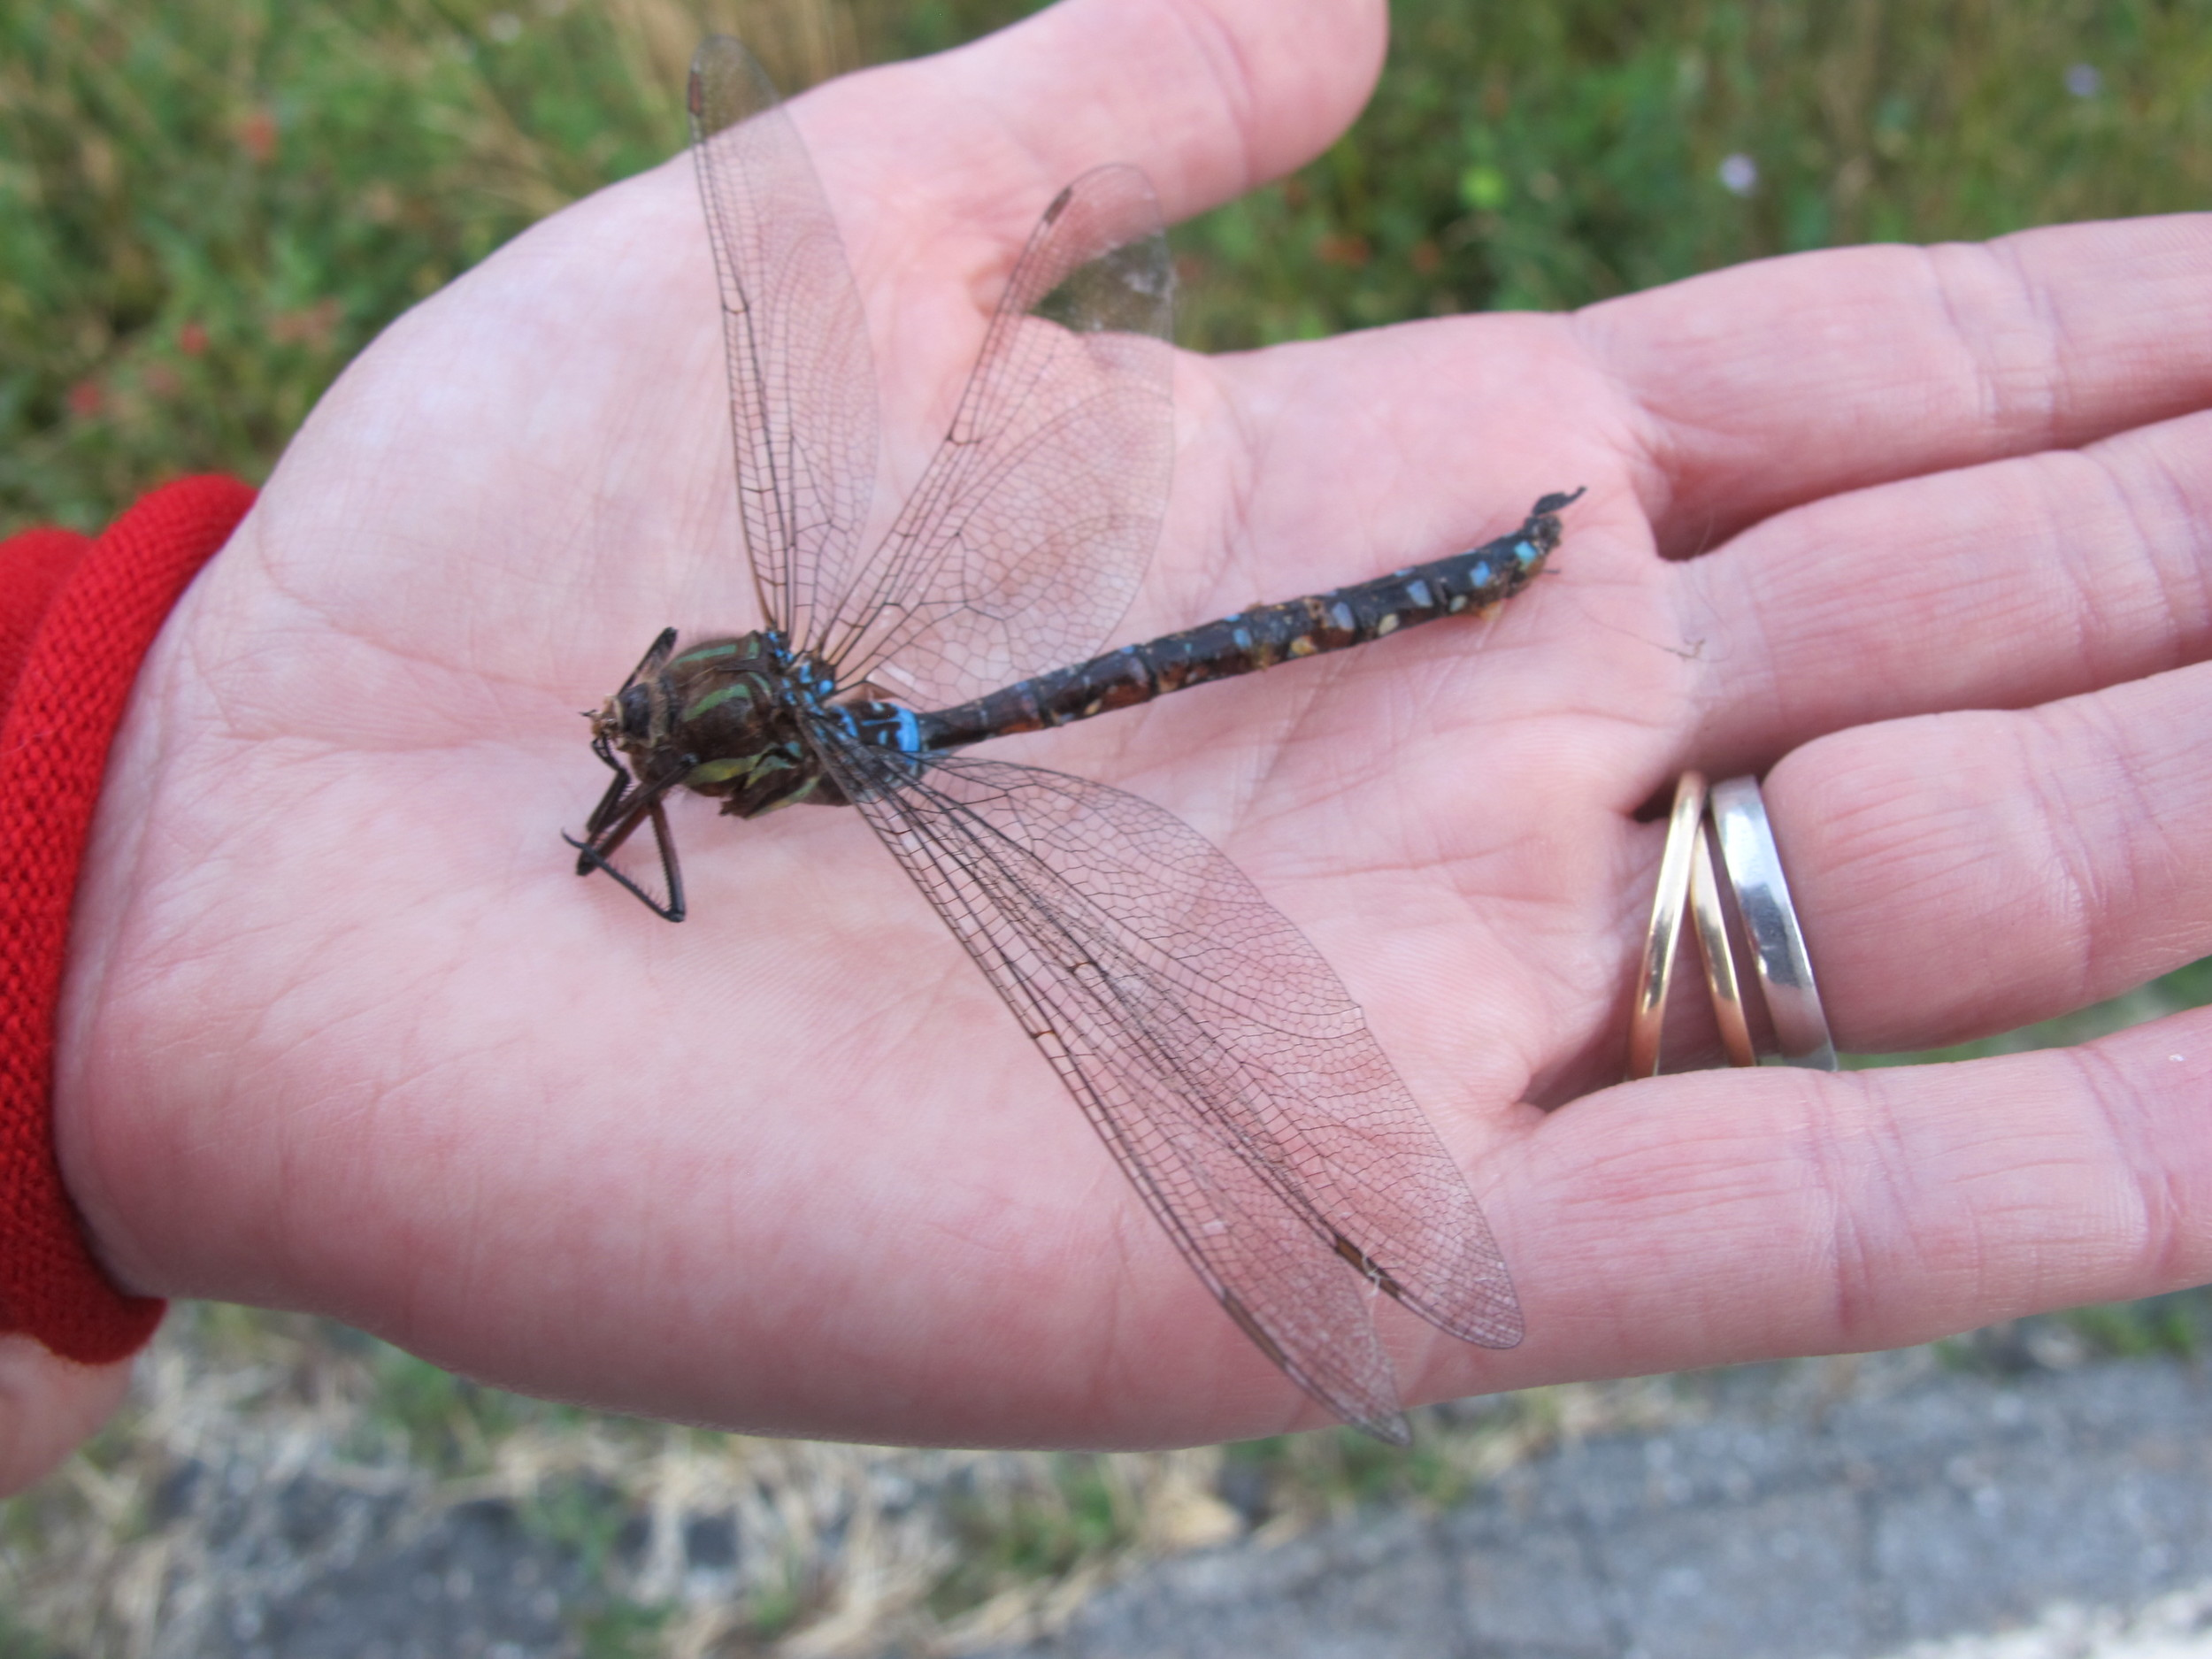 We found this beautiful dragonfly on the road. Don't know what happened to it, but it had expired. Scientists have long studied dragonfly wings for insights into building strong, lightweight, aerodynamic structures.